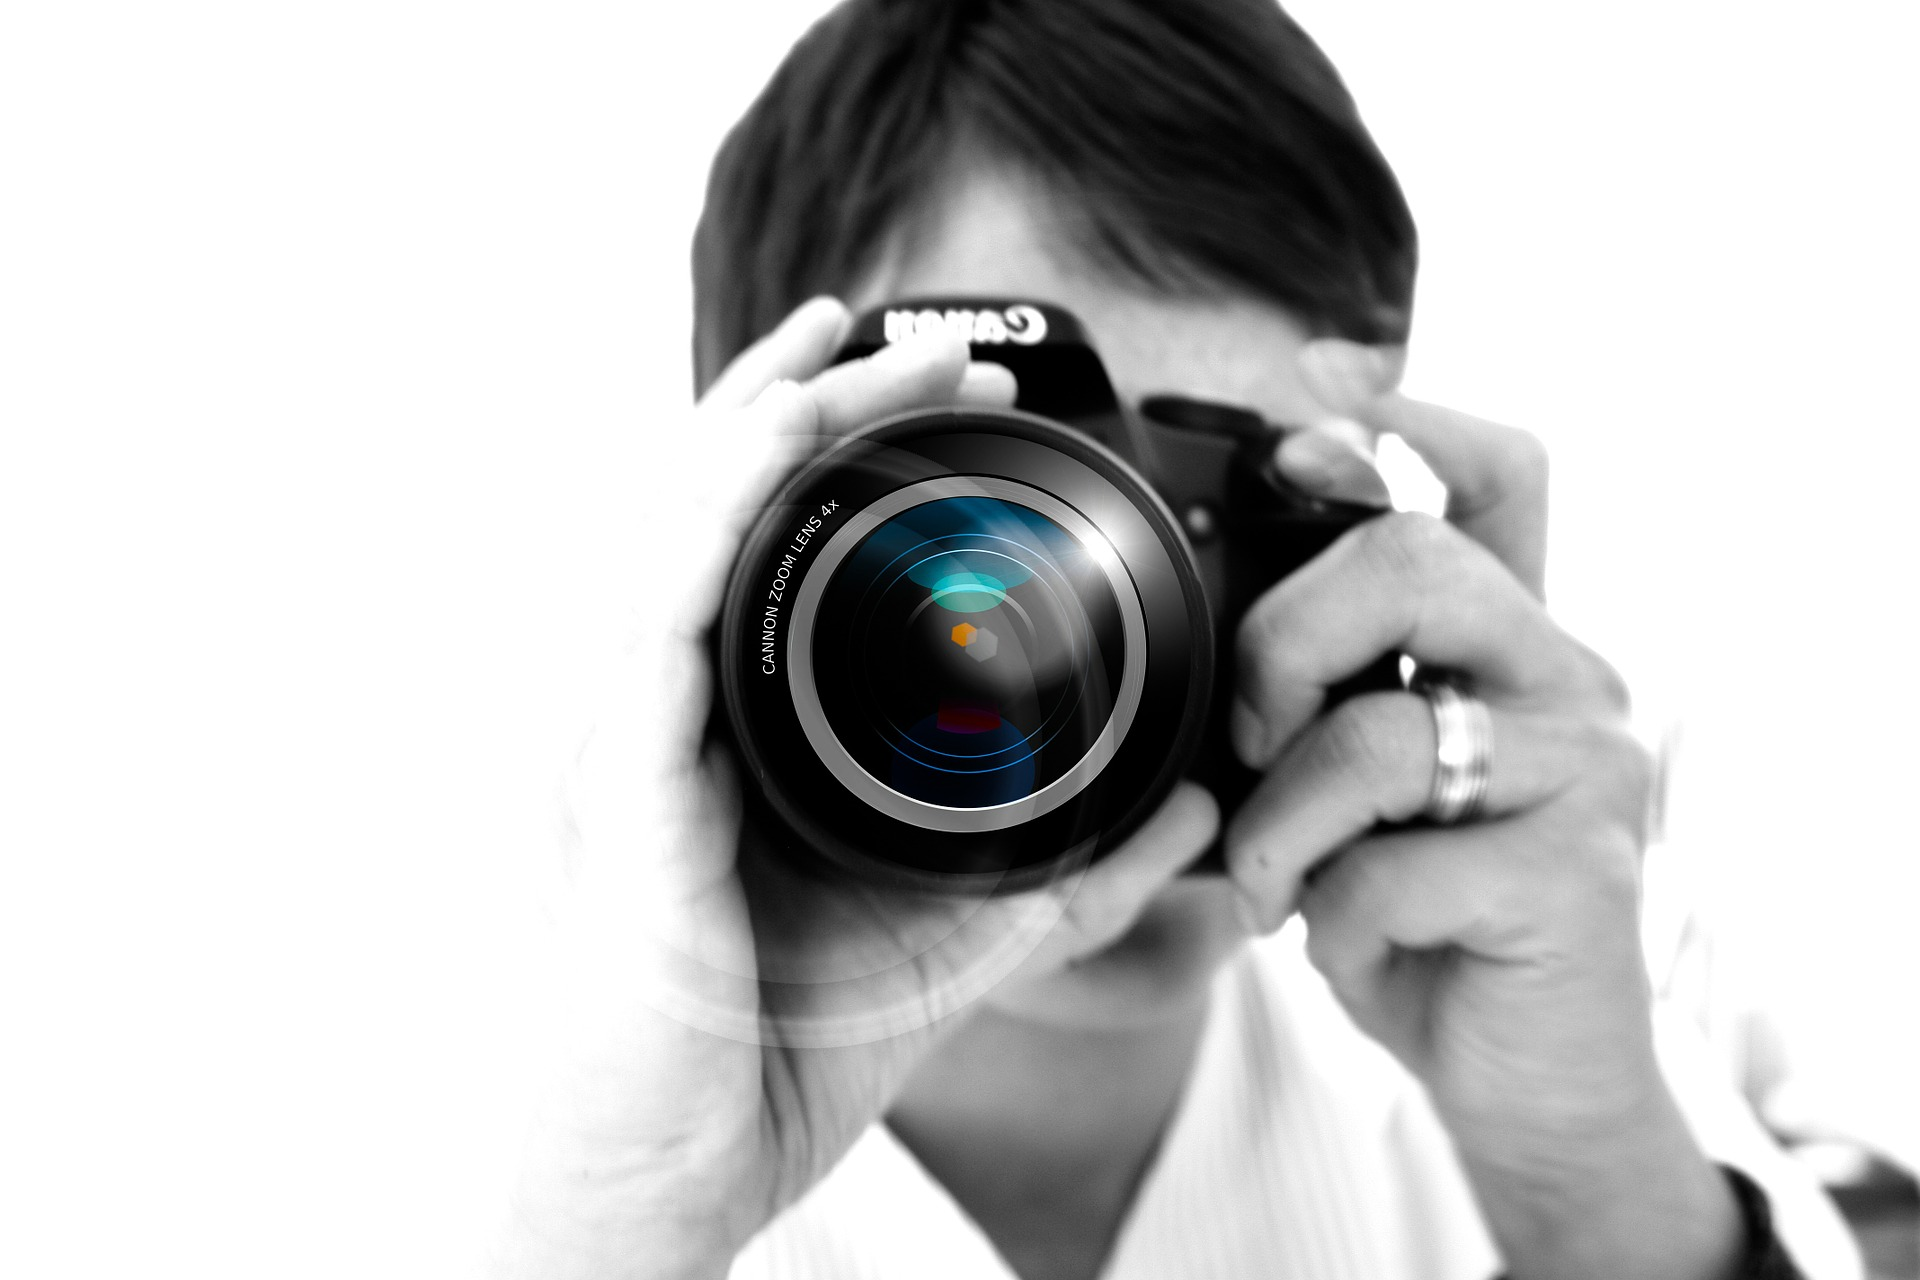 Free download high resolution image - free image free photo free stock image public domain picture -Man using a professional camera